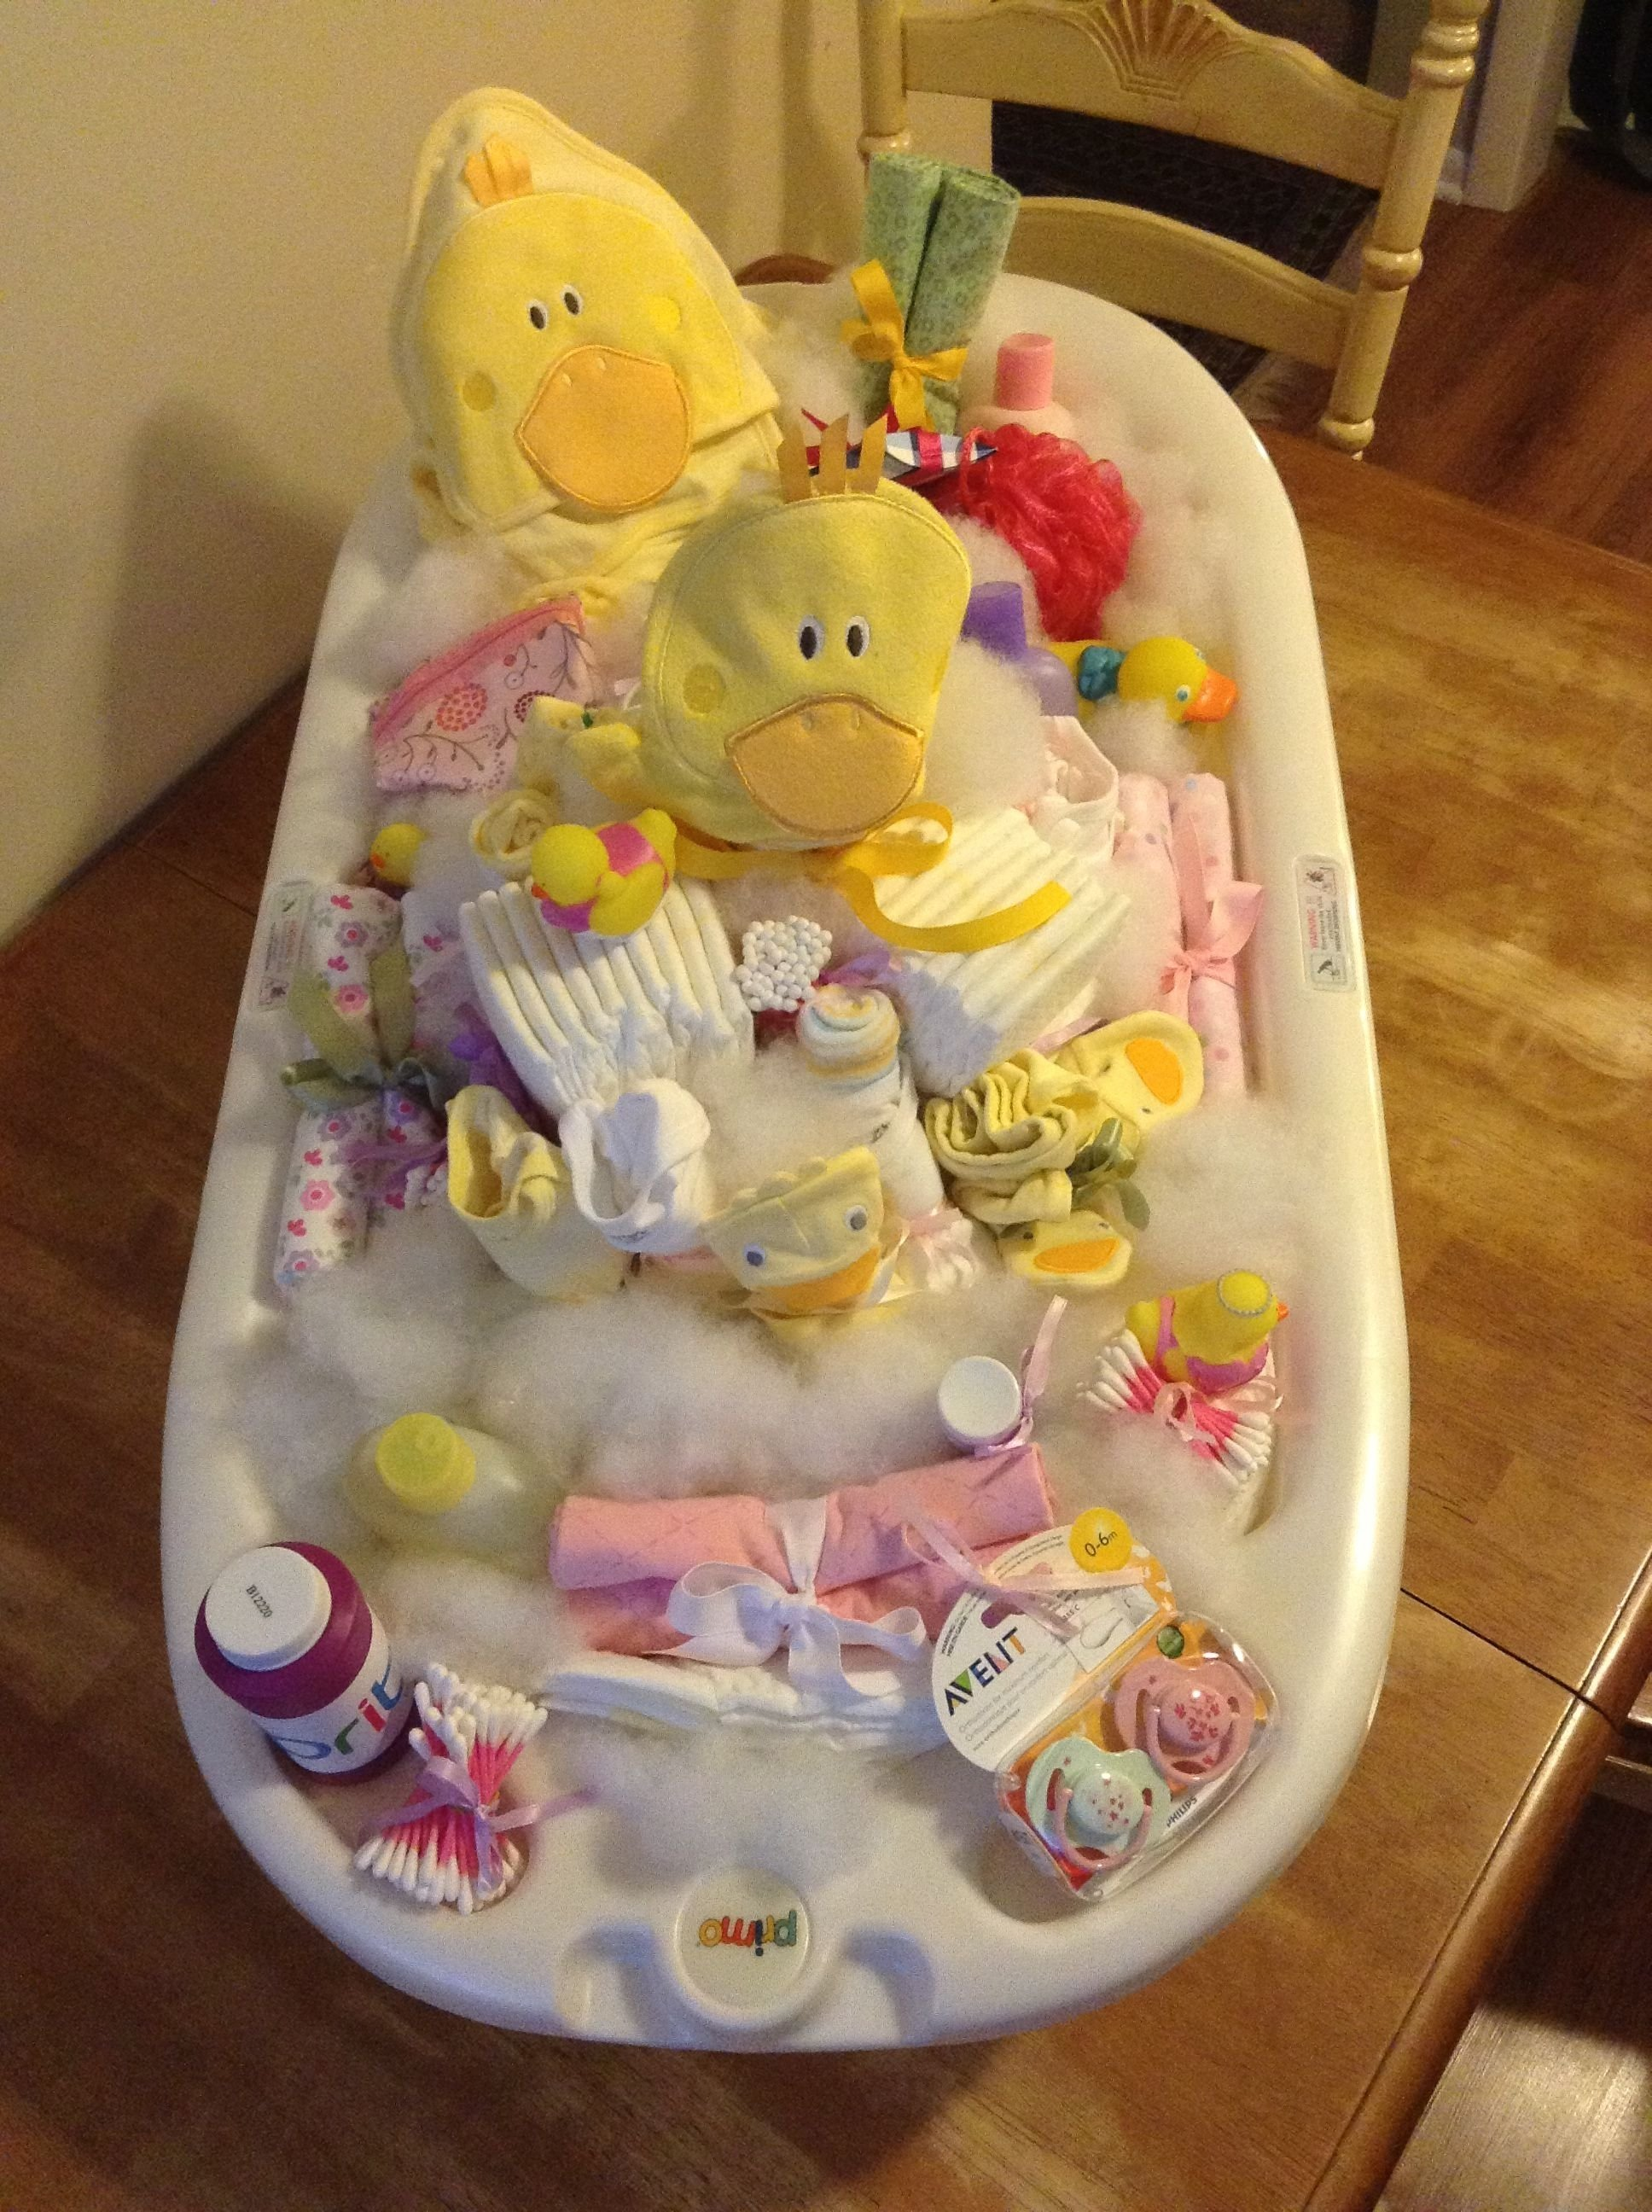 10 Cute Cute Baby Shower Gift Ideas sweet baby shower gift the base of the tub is filled with diapers 2 2020